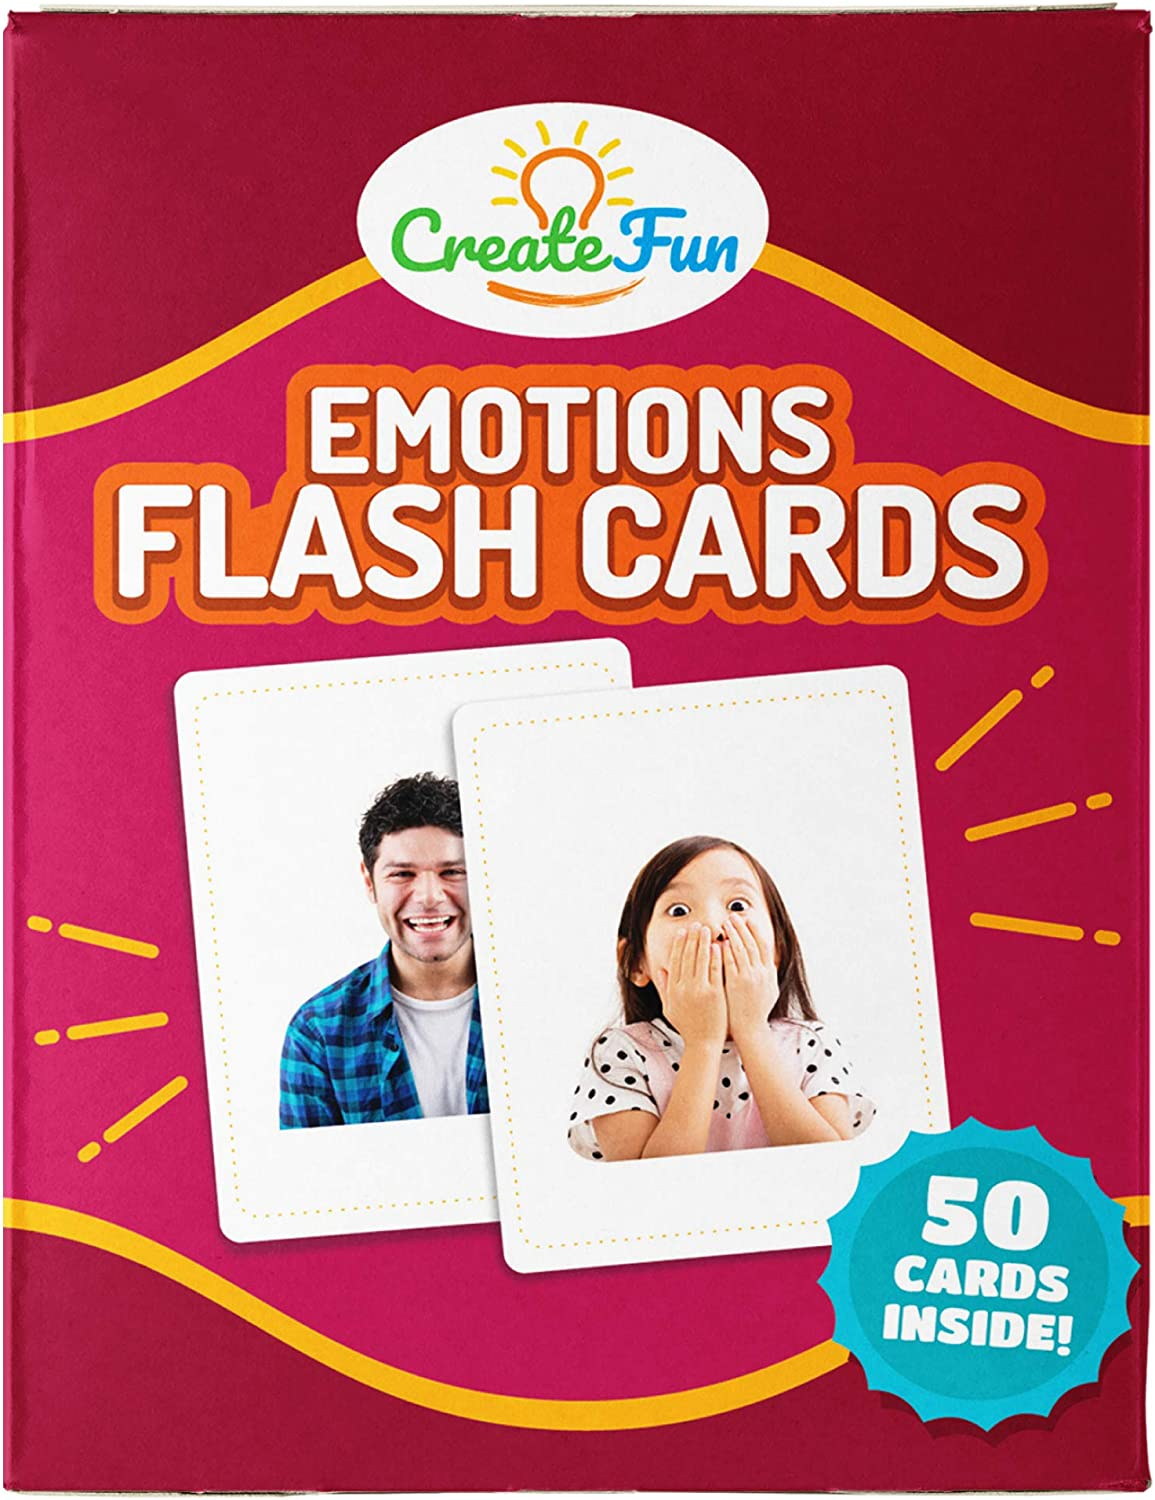 CreateFun Feelings and Emotions Flash Cards | 50 Emotion Development Educational Photo Cards | 7 Starter Learning Games for Your Classroom, Speech Therapy Materials and ESL Teaching Materials